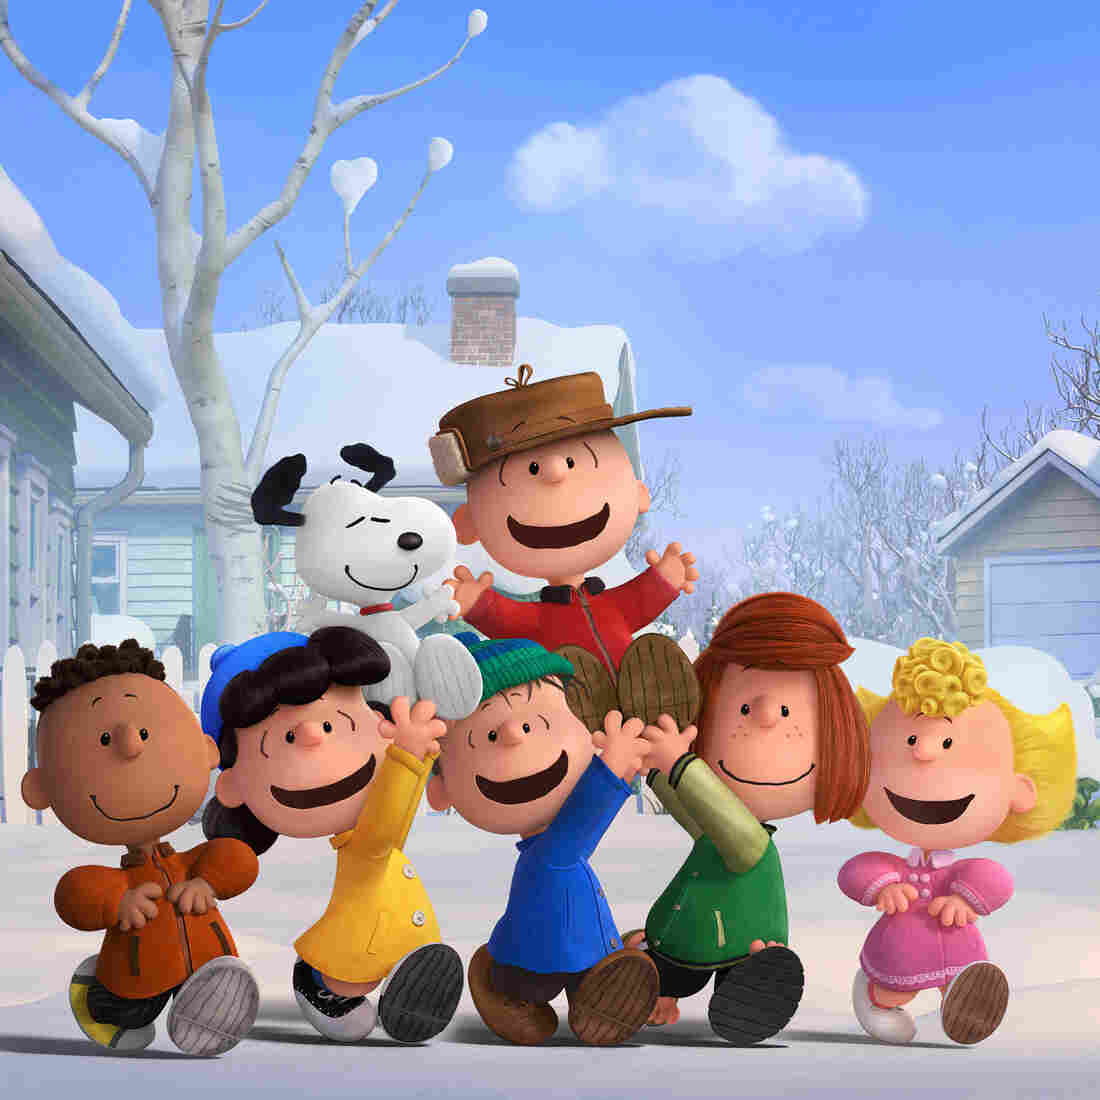 Snoopy Gets Out Of The Doghouse In 'The Peanuts Movie'